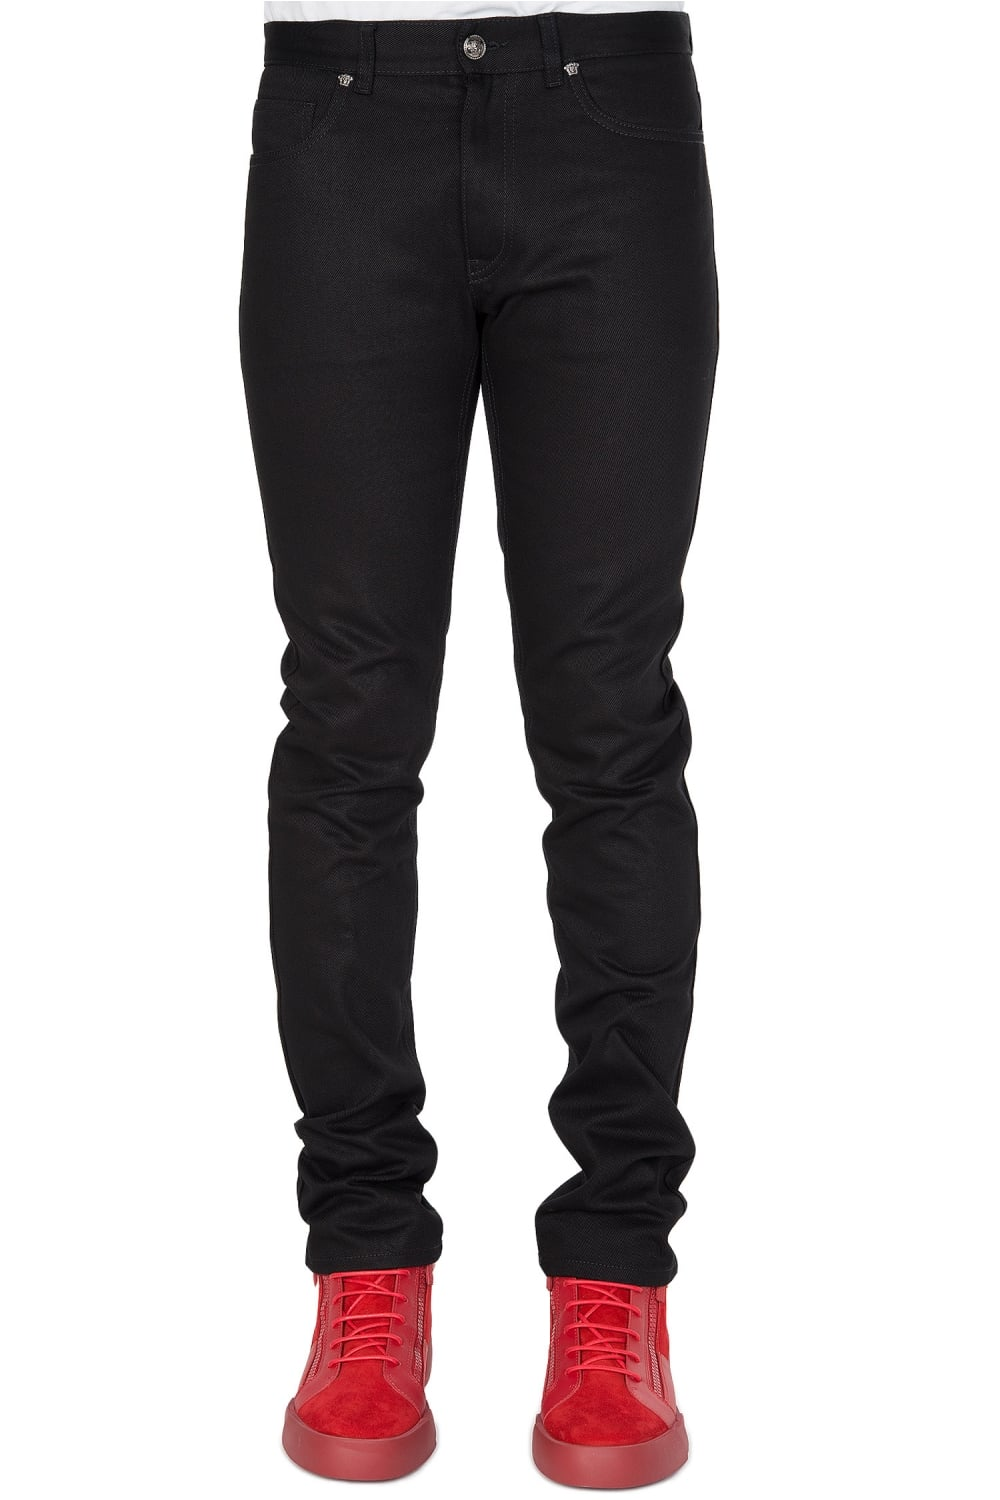 VERSACE Versace Mainline Black Jeans - VERSACE from Circle Fashion UK